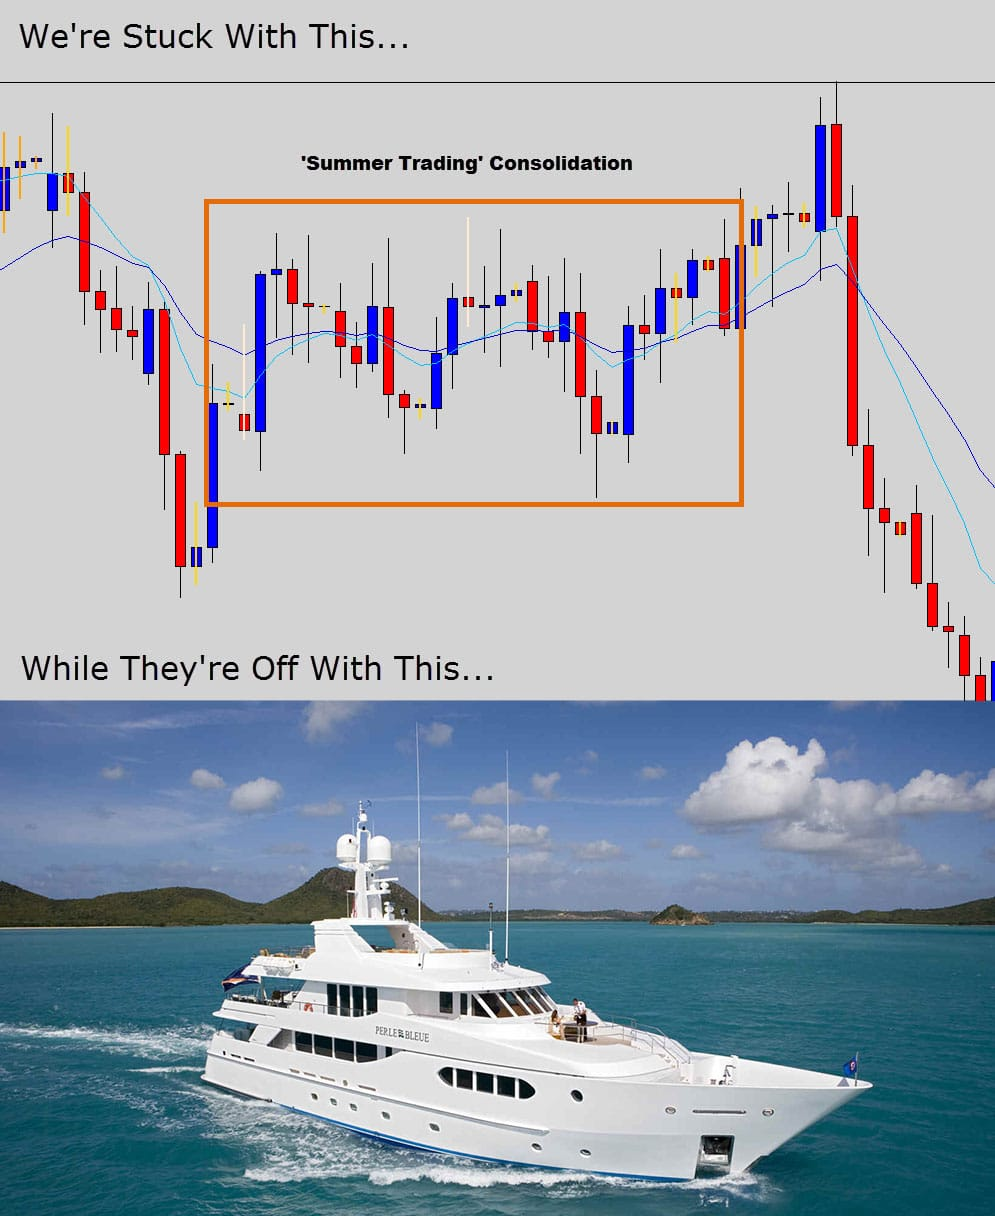 summer trading consolidation